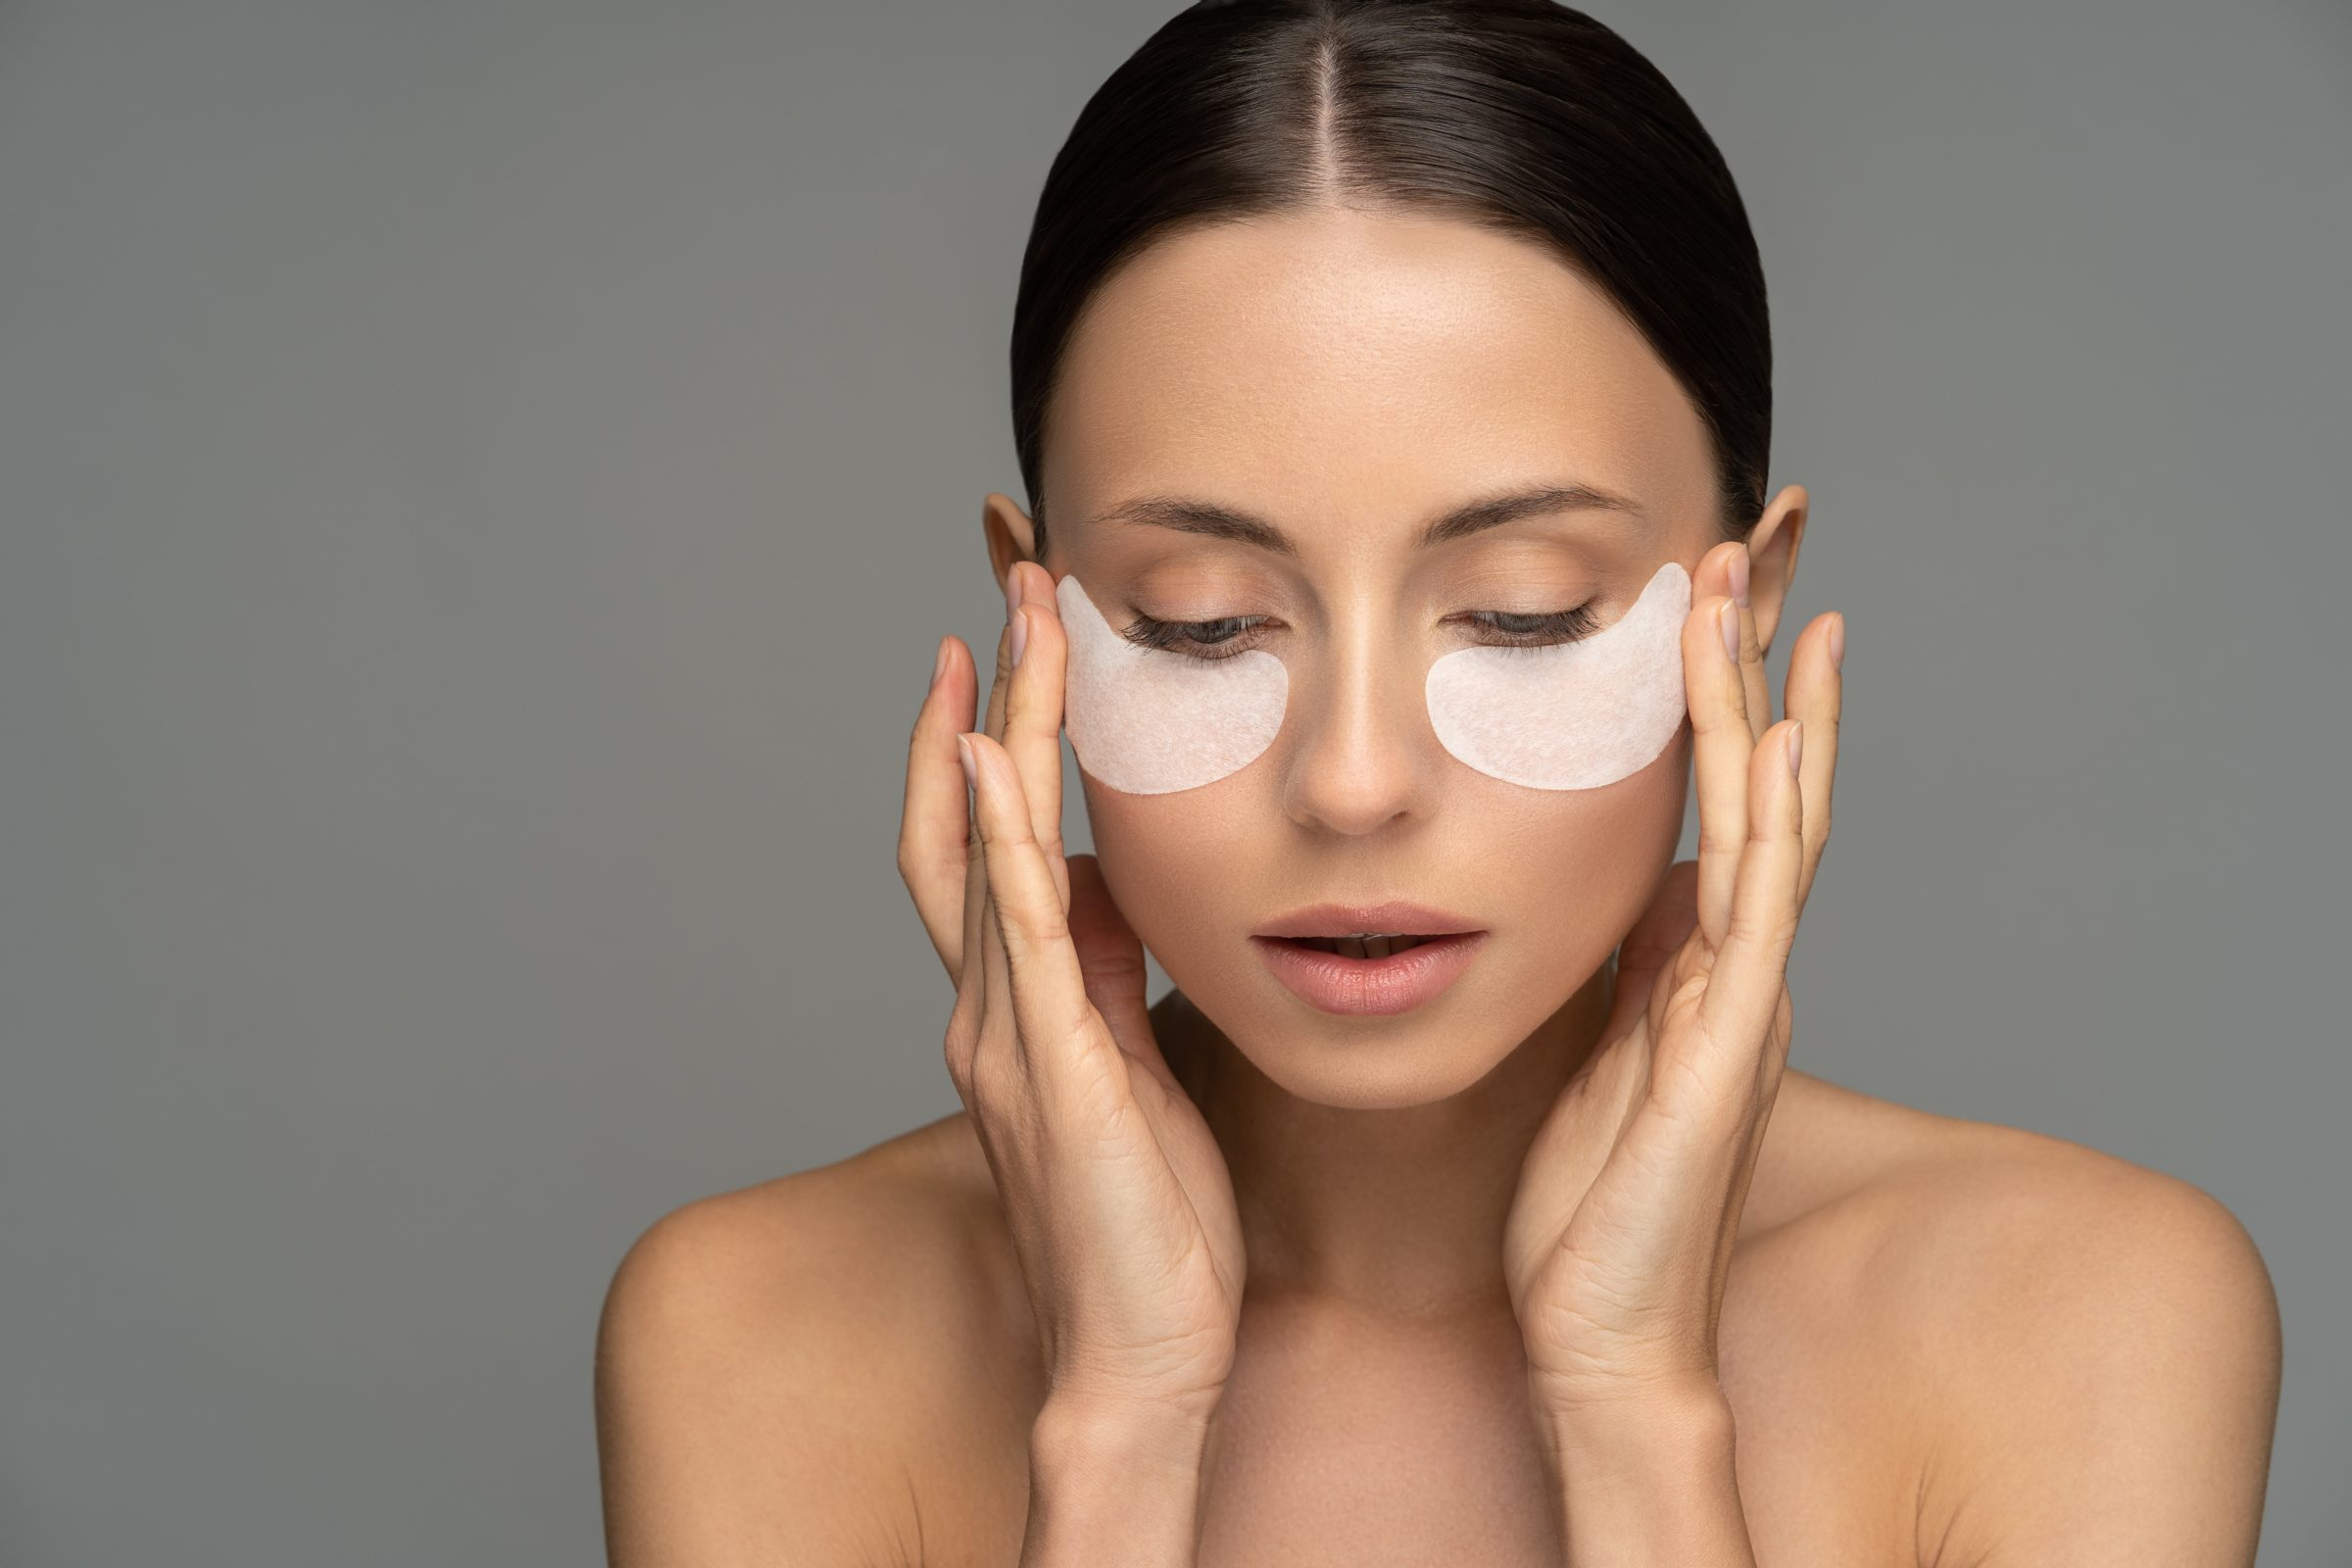 woman applying hydrogel under eye recovery patches FS5JHAT